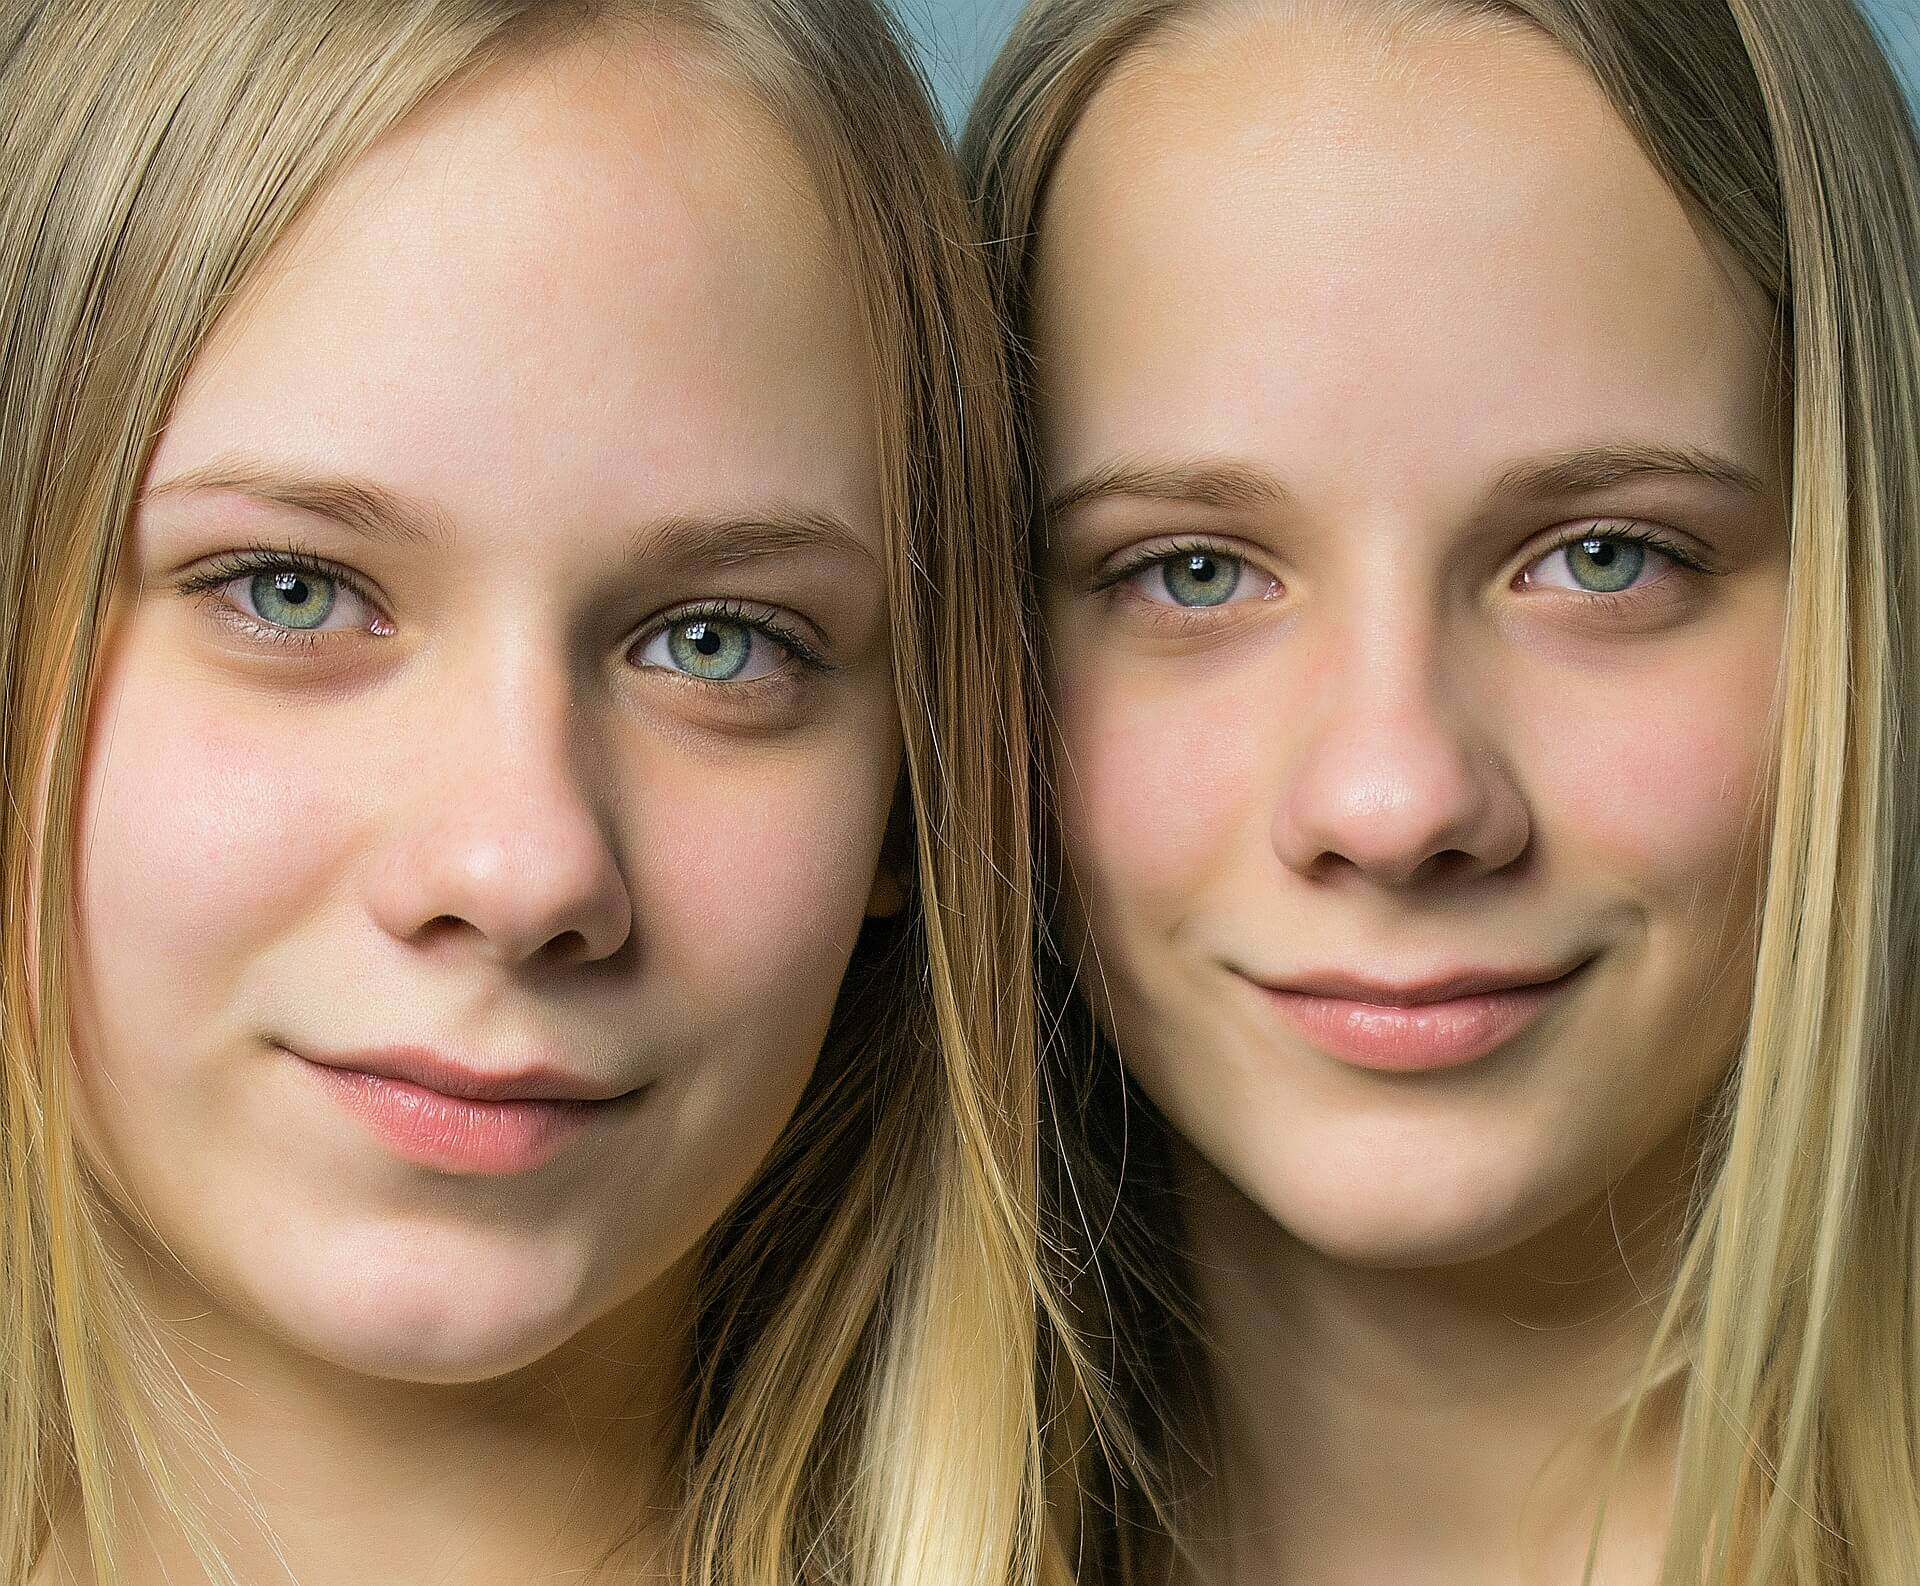 two young girls that will not be corrupted by legalization of cannabis